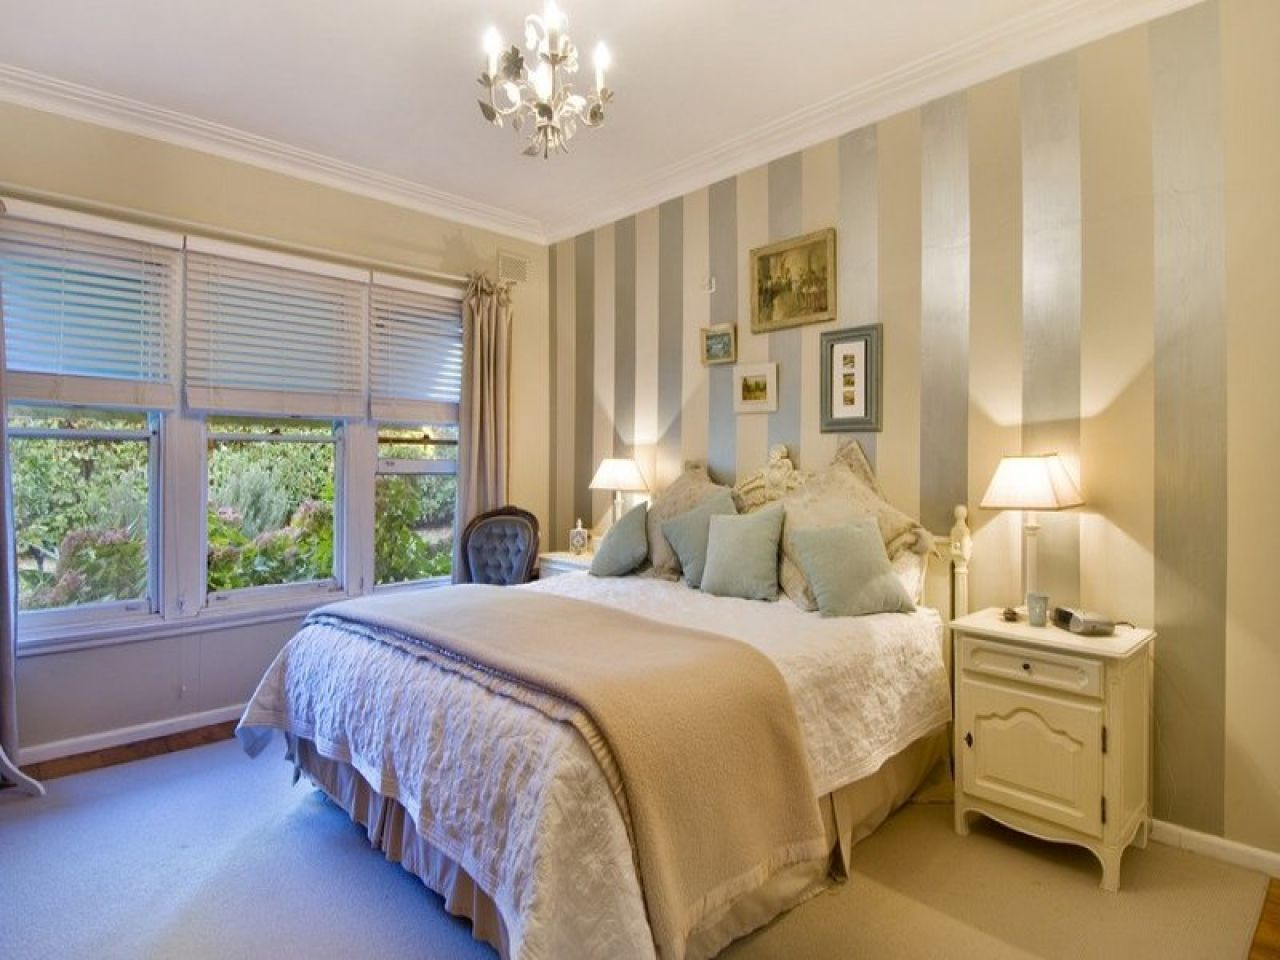 Bedroom excellent cream and gold bedroom beige carpet bedroom ideas carpet vidalondon cream and gold